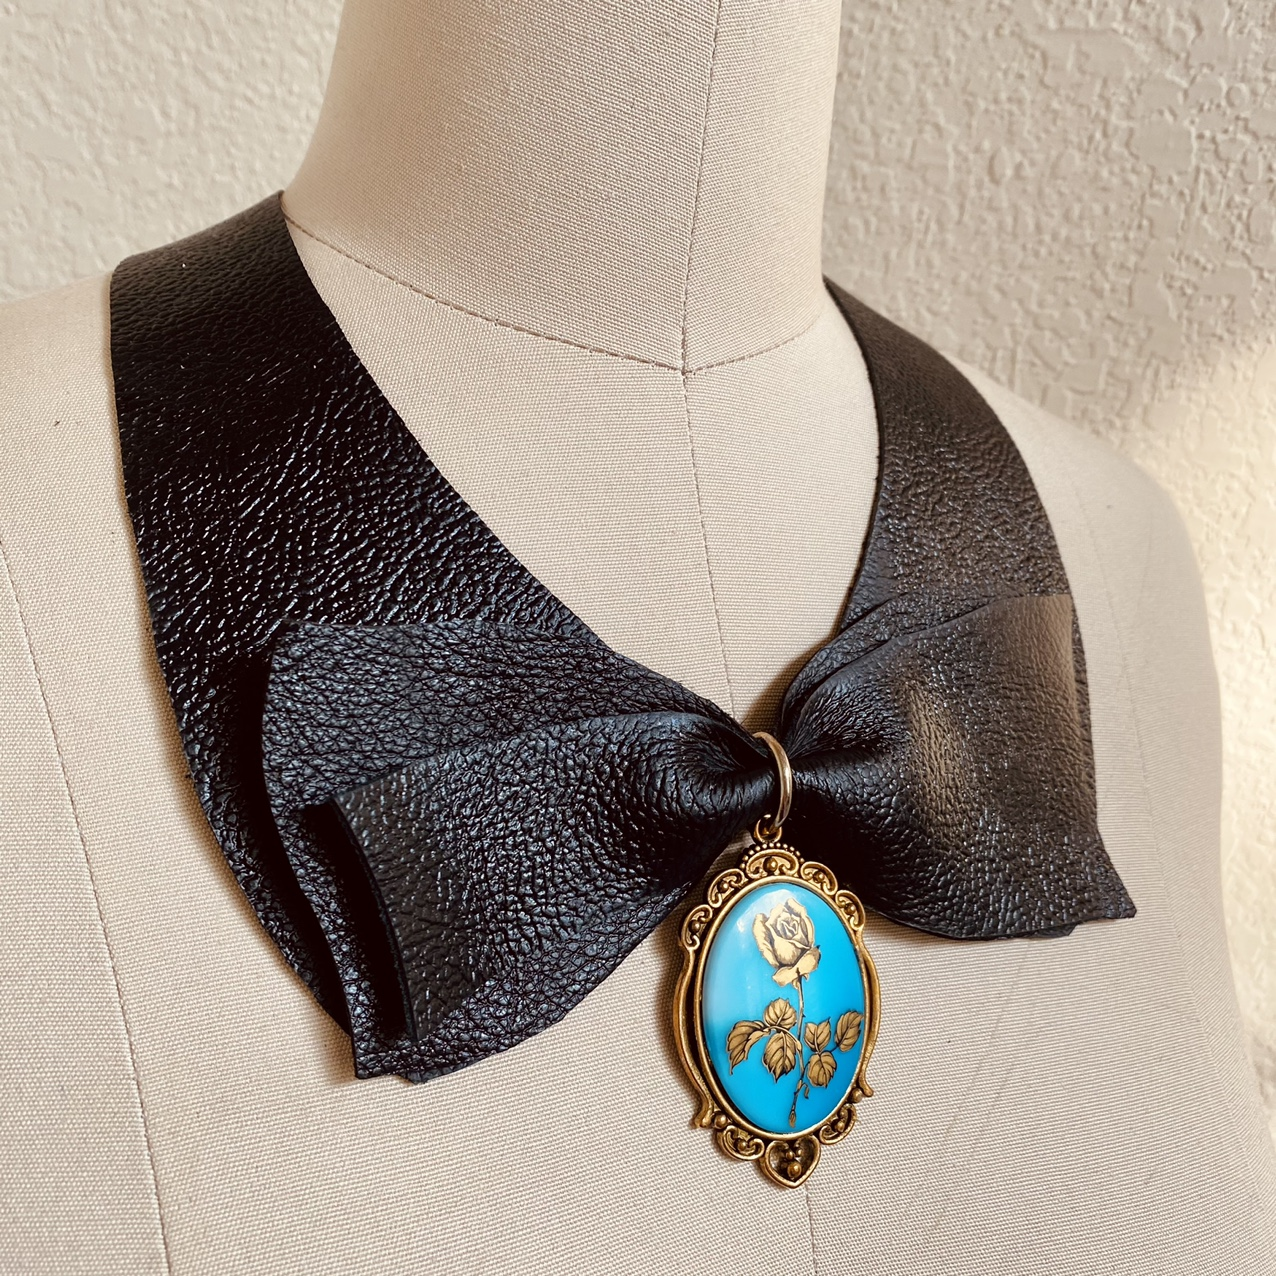 Product Image 1 - Vintage-inspired black leather goth bow